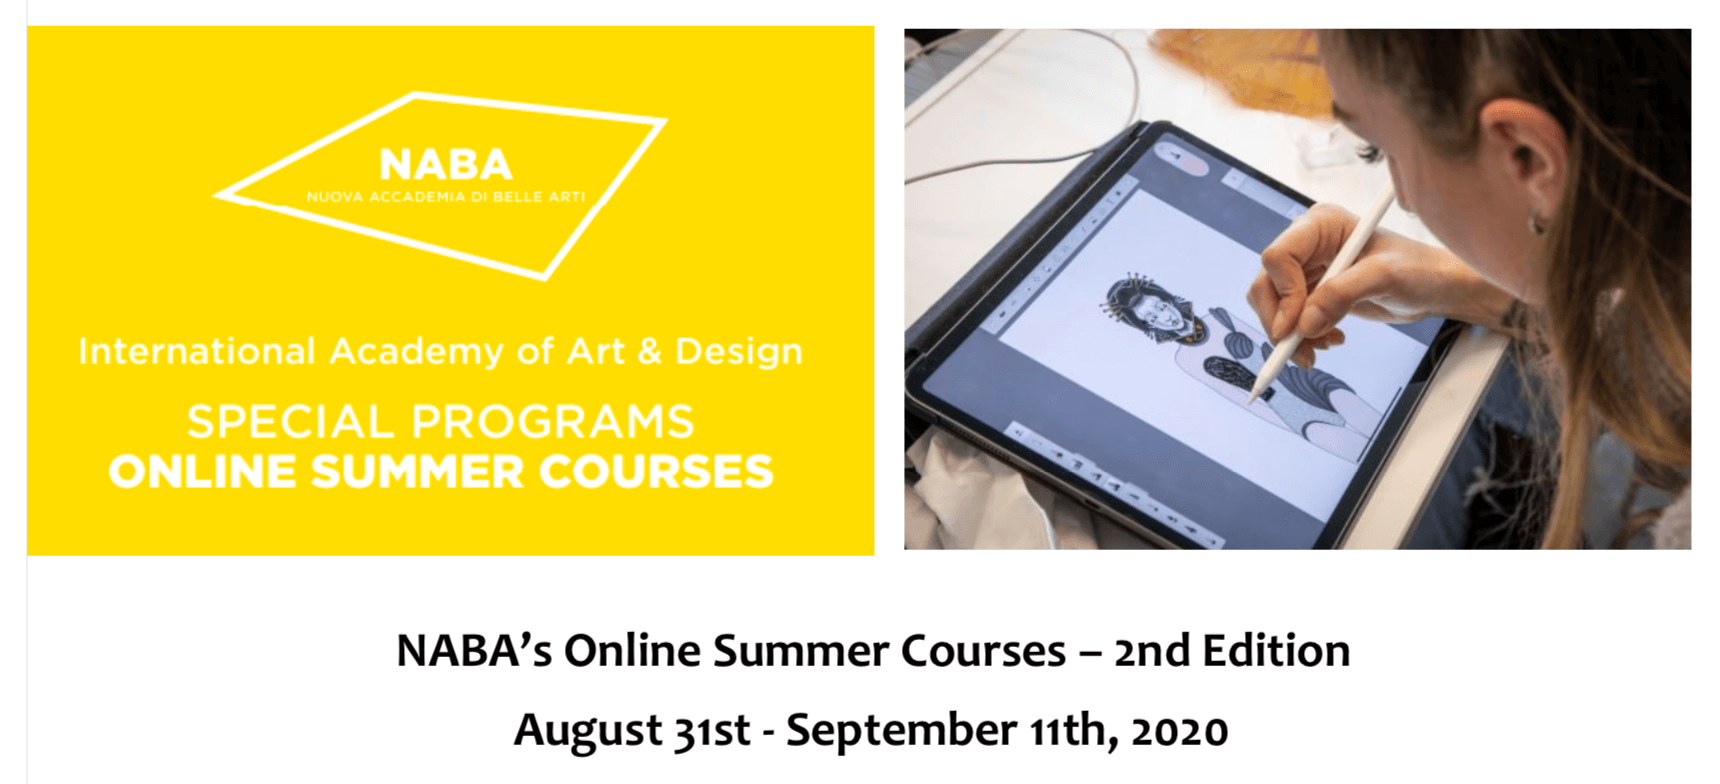 NABA's Online Summer Courses 2